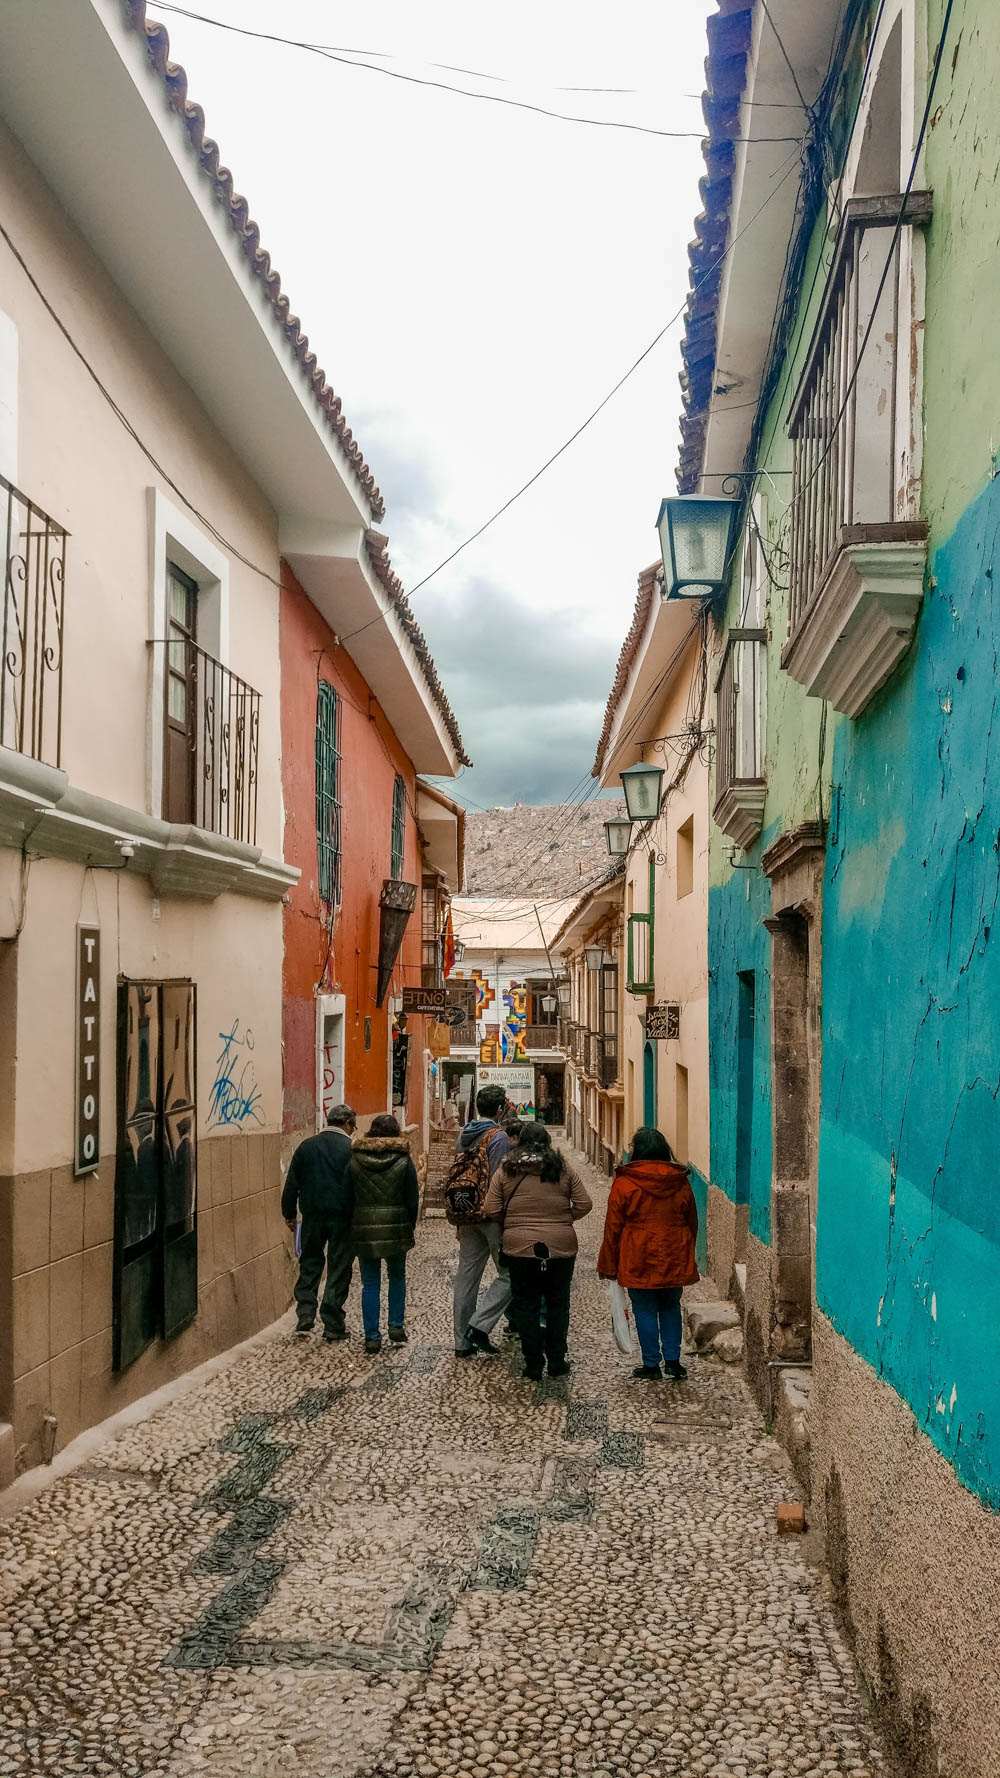 Calle Jaén, historical cobblestone street - Best places to visit in La Paz, Bolivia | Aliz's Wonderland